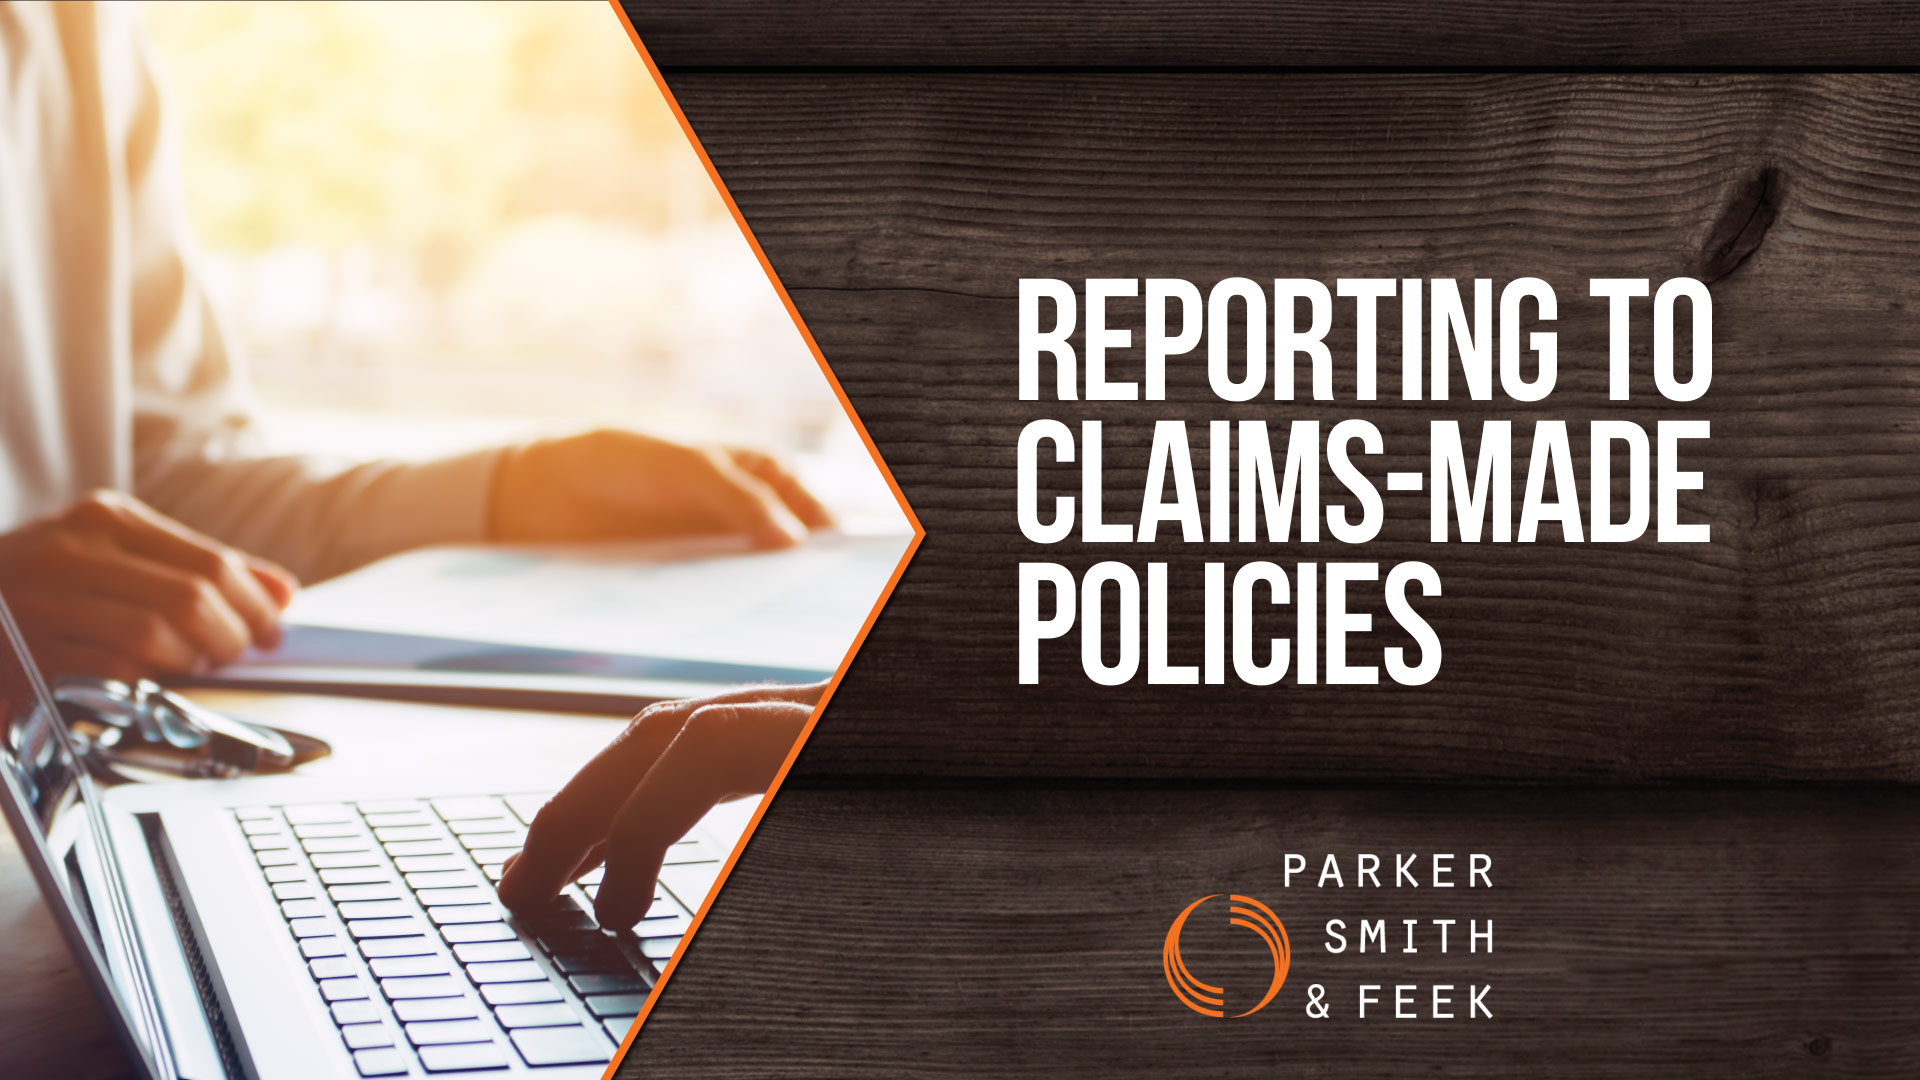 Reporting to claims-made policies